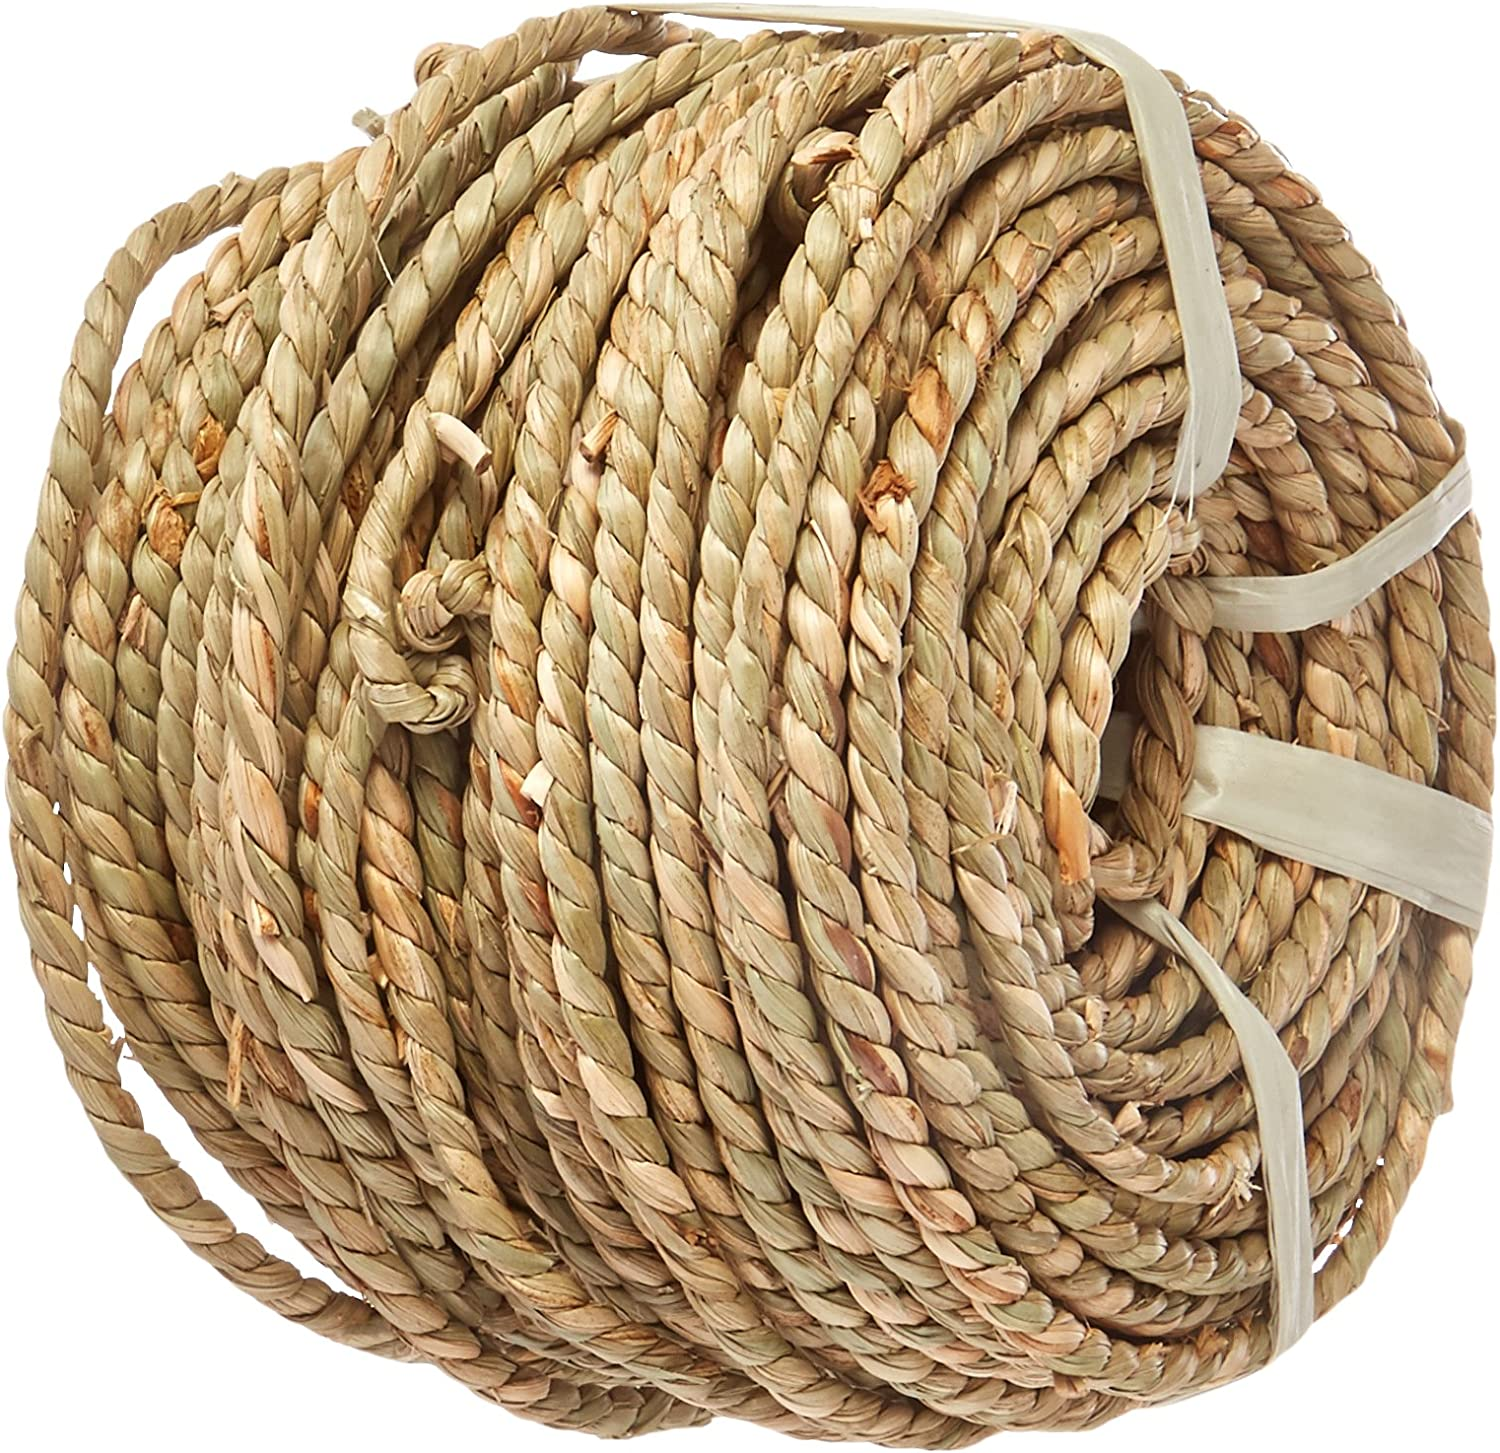 Commonwealth Basket Basketry Sea Grass 3 4 1 2mmx5mm 1 Pound Coil Approximately 210 Feet